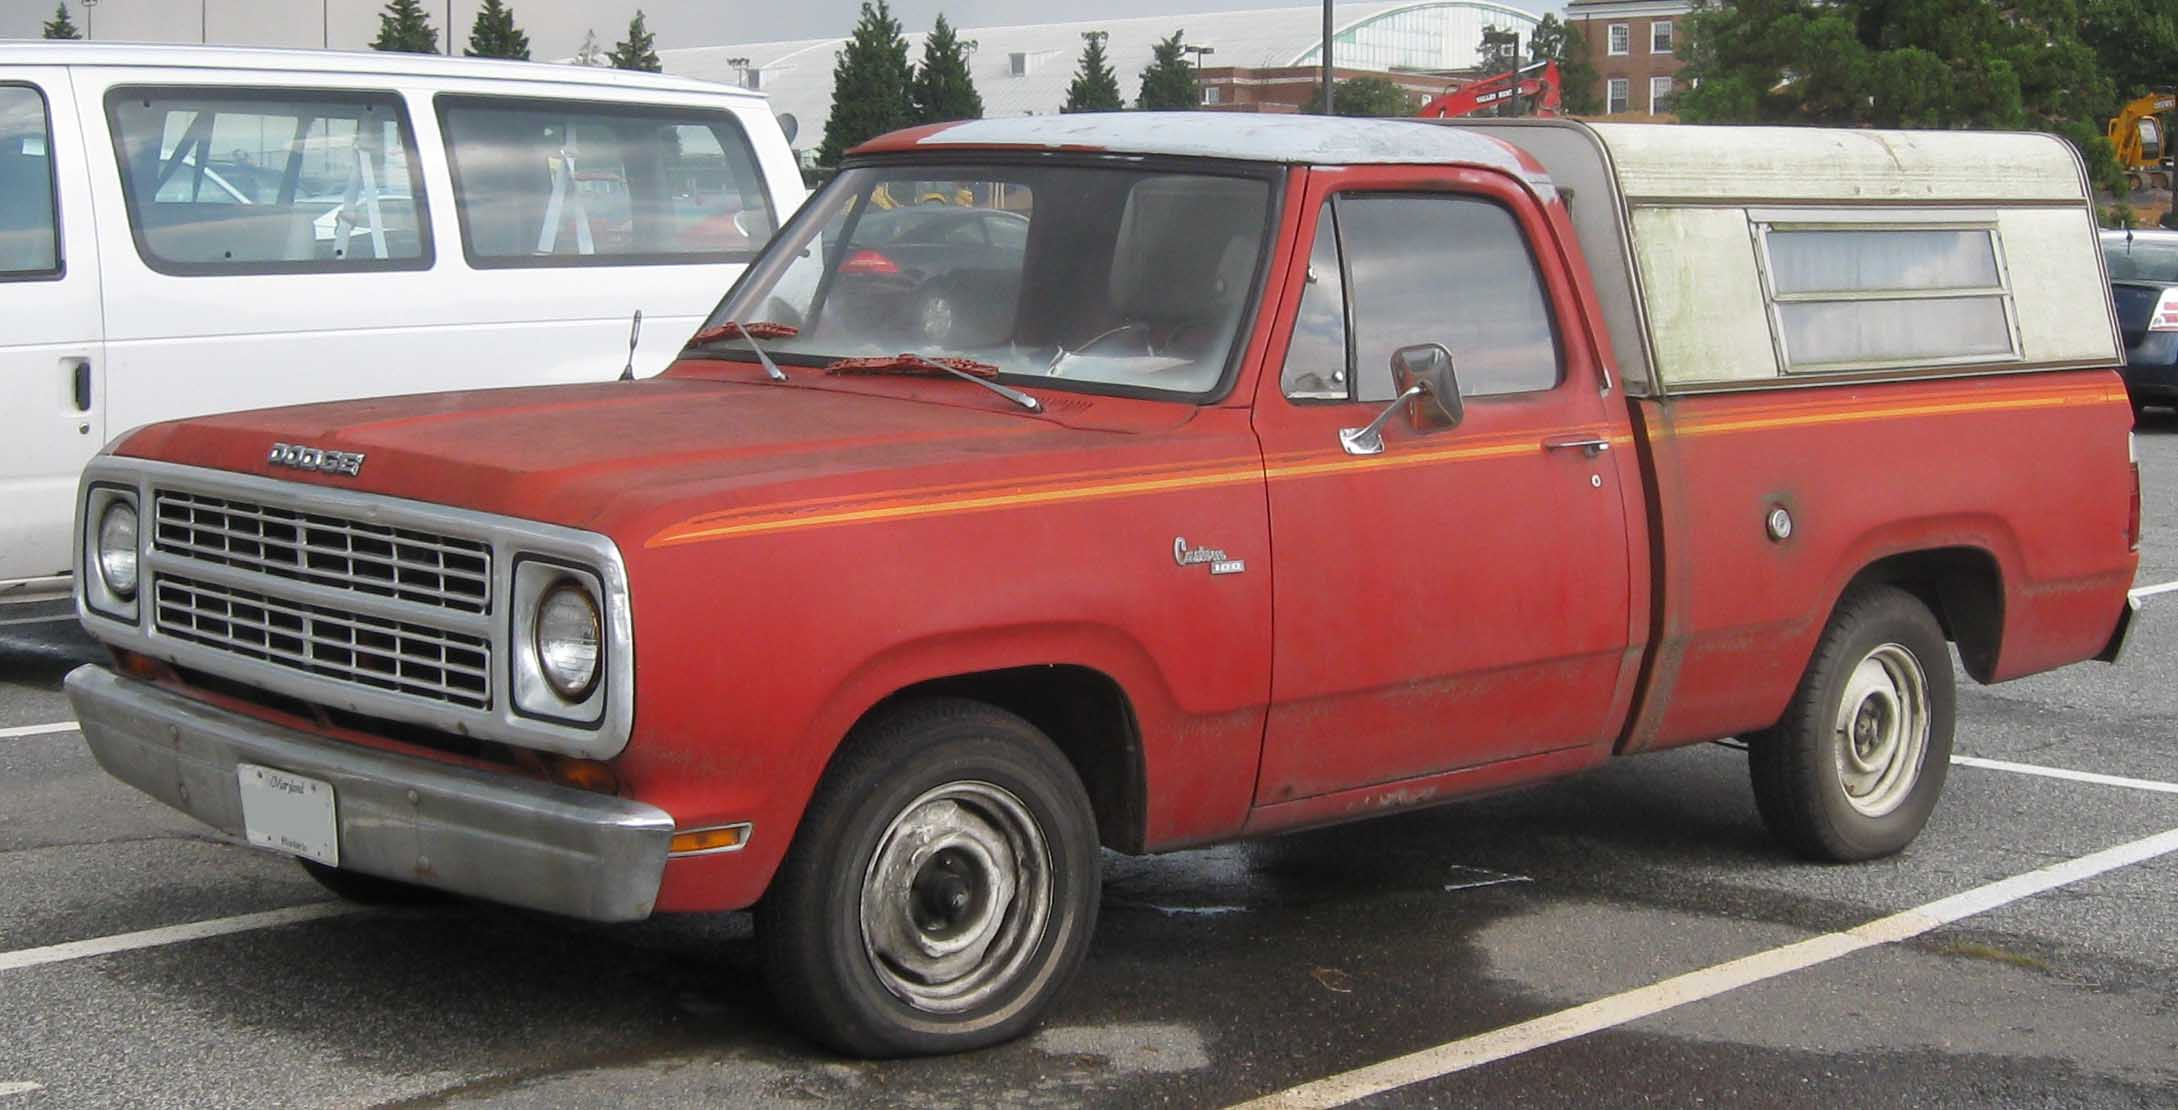 1979 Dodge Pickup Electrical Wiring | Wiring Diagram on dodge d100 carburetor, ford f-250 super duty wiring diagram, plymouth colt wiring diagram, dodge d100 parts, dodge d100 electrical wiring, mercury zephyr wiring diagram, dodge d100 engine, dodge d100 chassis, mitsubishi starion wiring diagram, dodge d100 oil filter, dodge d100 lighting diagram, dodge d100 clutch, dodge d100 radio, dodge d100 suspension, dodge d100 frame, 1937 ford wiring diagram, buick reatta wiring diagram, jeep cj-7 wiring diagram, saturn sw wiring diagram, gmc motorhome wiring diagram,